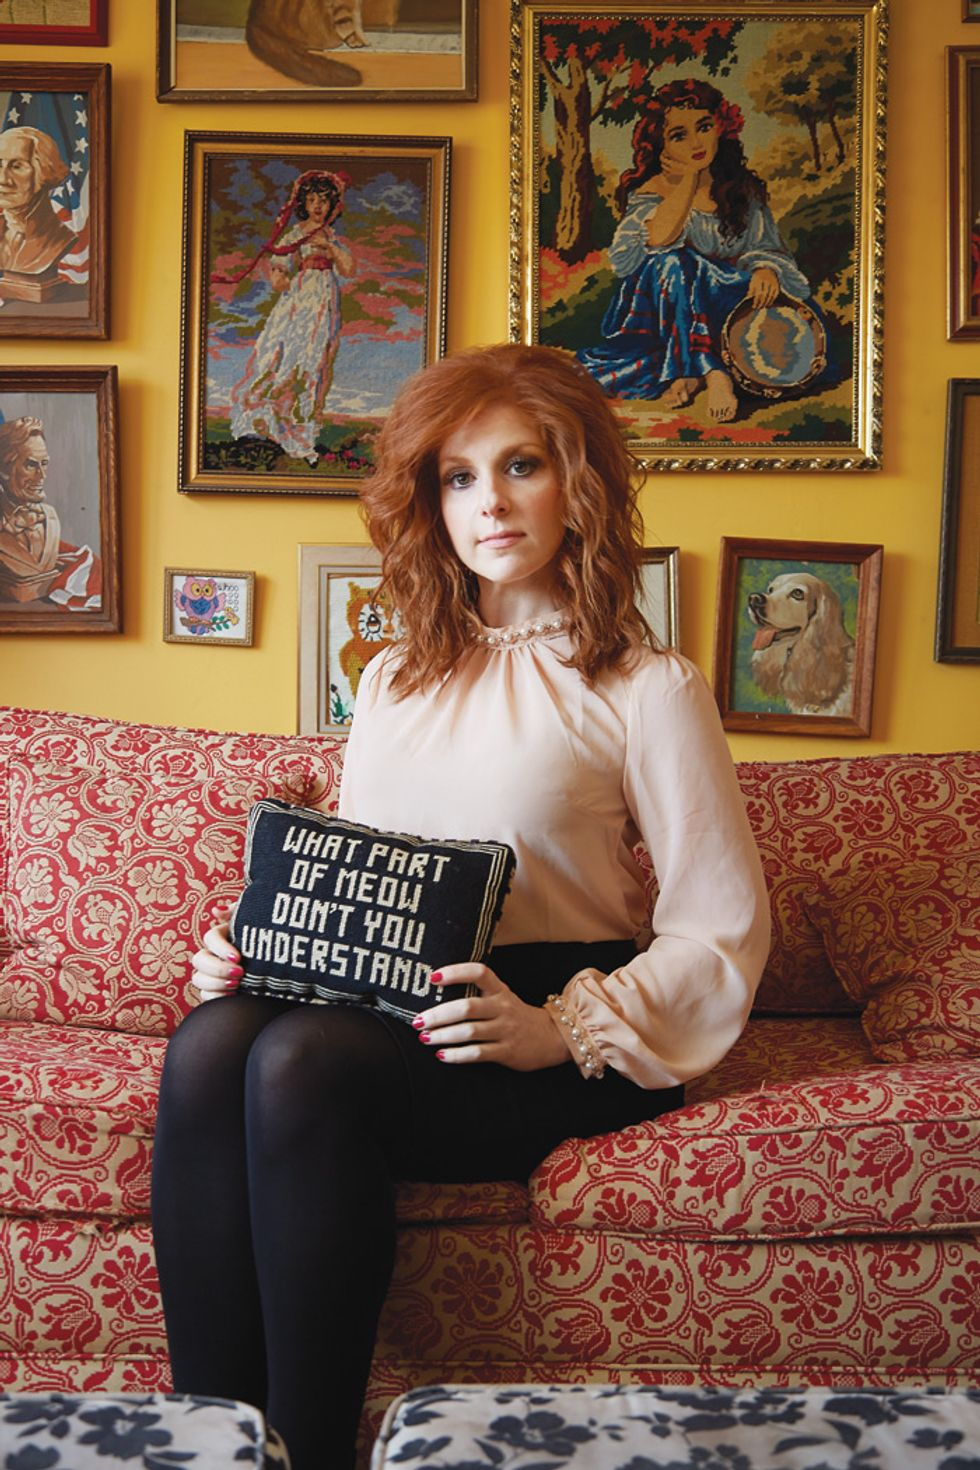 Comedy Podcasting Personality Julie Klausner Chats With Us About the Internet  and Her New Y.A. Novel